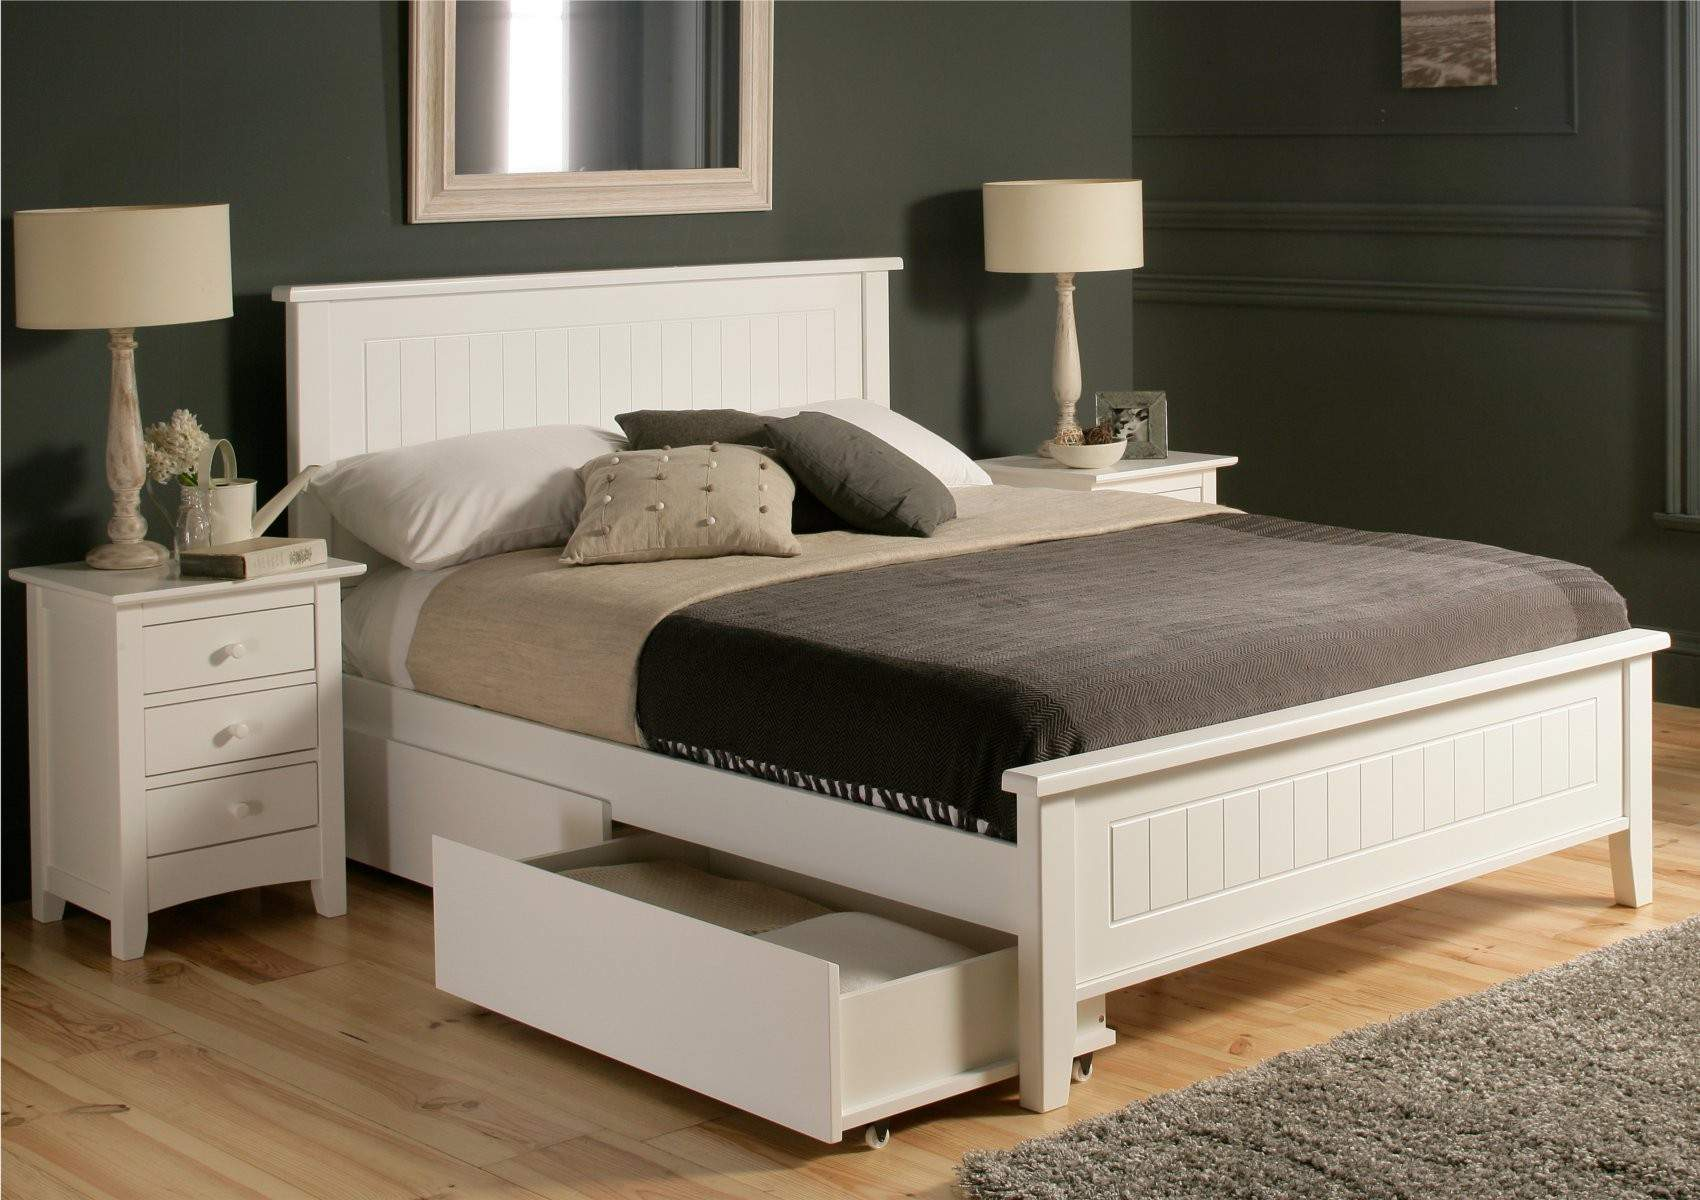 Bed With Drawers Underneath Beds With Drawers Underneath | Homesfeed